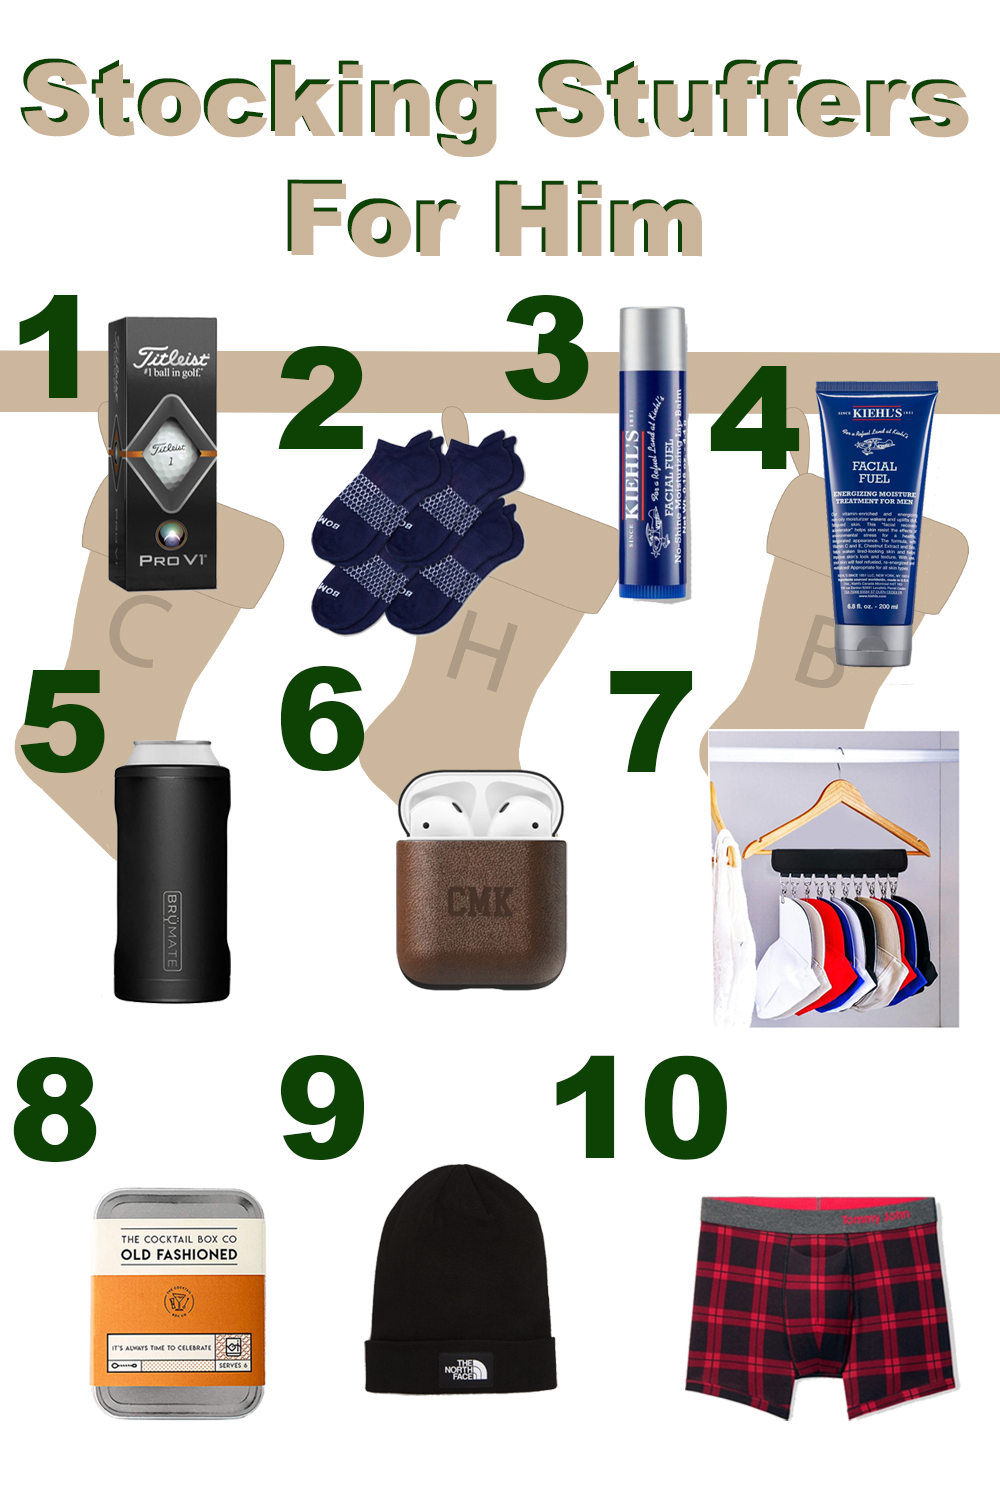 Stocking Stuffers for Him - Practical Items he will use